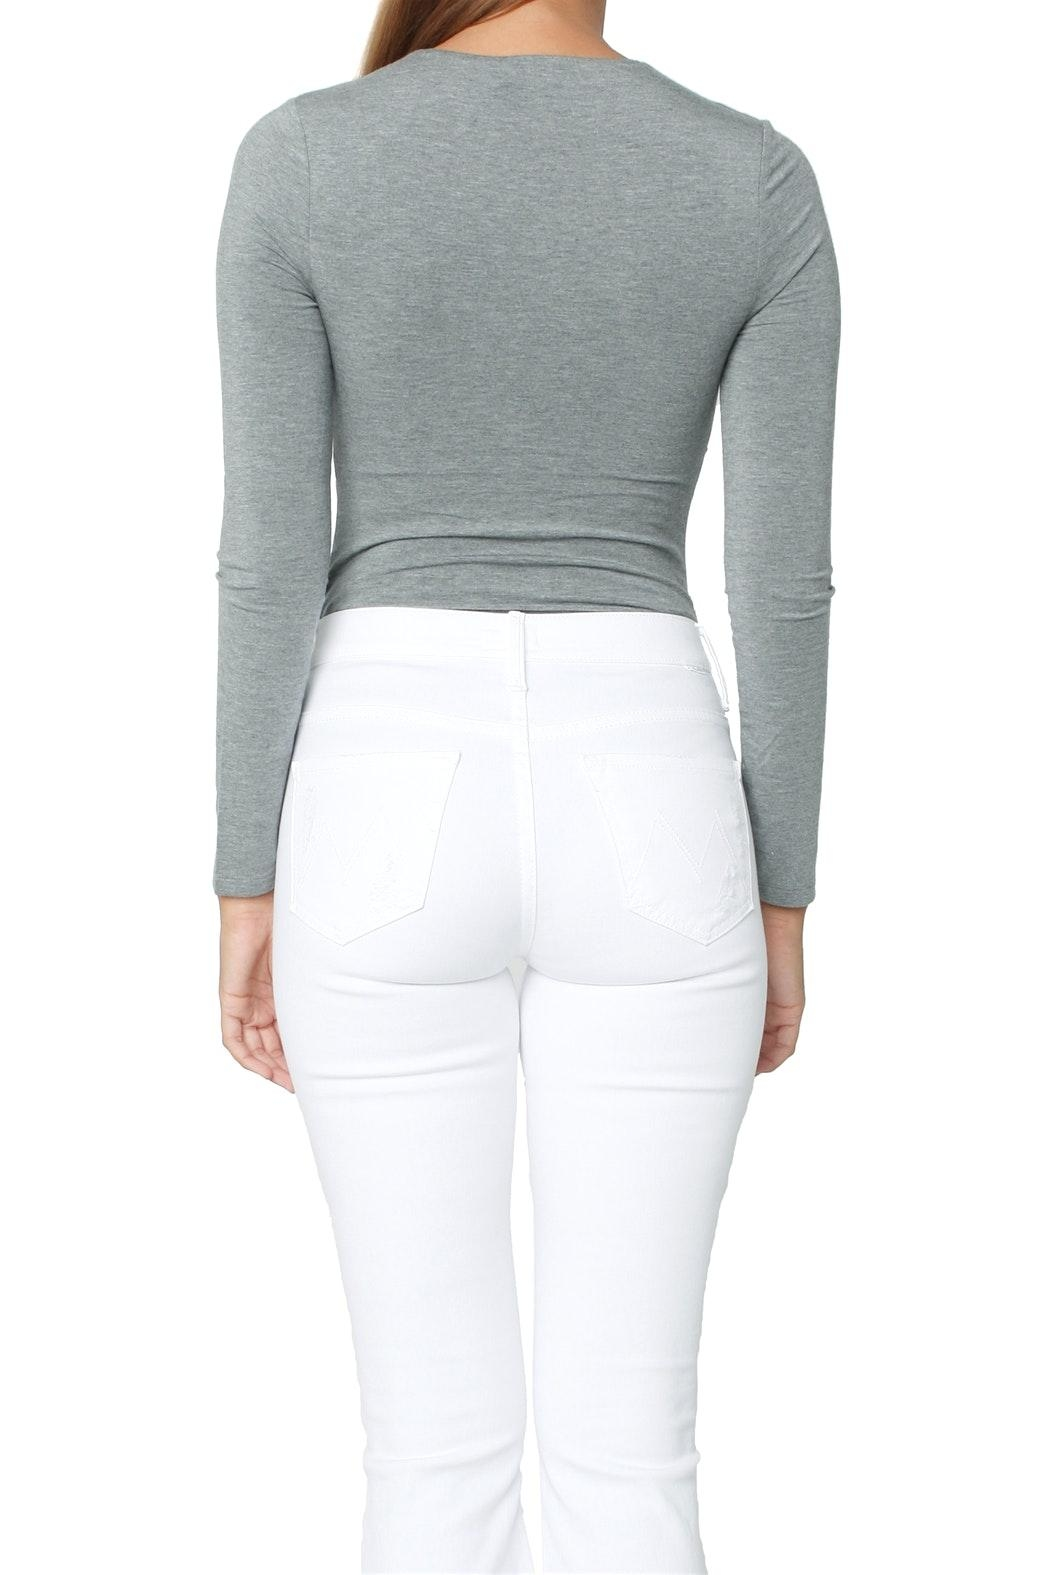 Alexander wang Twist Front Bodysuit - Back Cropped Image